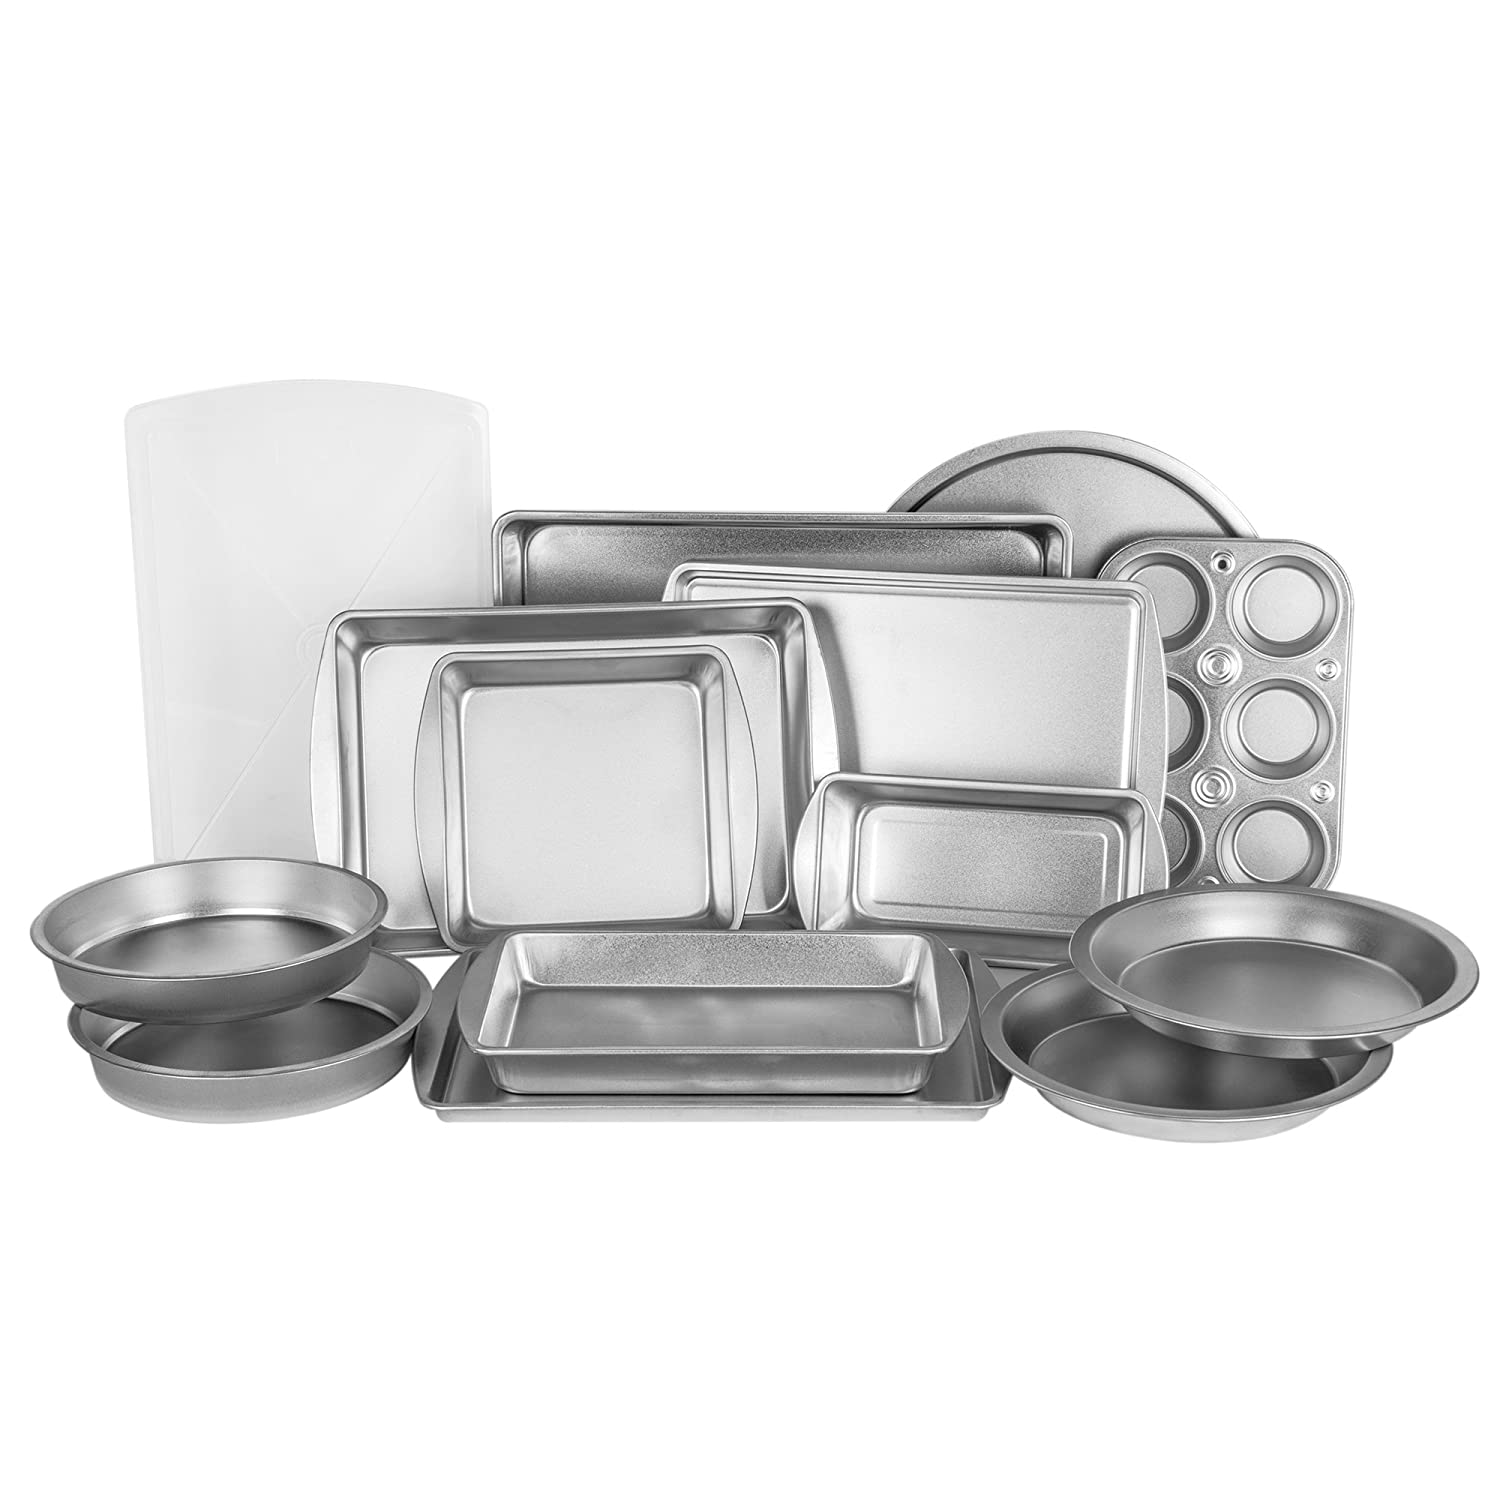 EZ Baker Uncoated, Durable Steel Construction 12-Piece Bakeware Set - Natural Baking Surface that Heats Evenly for Perfect Baking Results, Set Includes all Necessary Pans AZ1212T